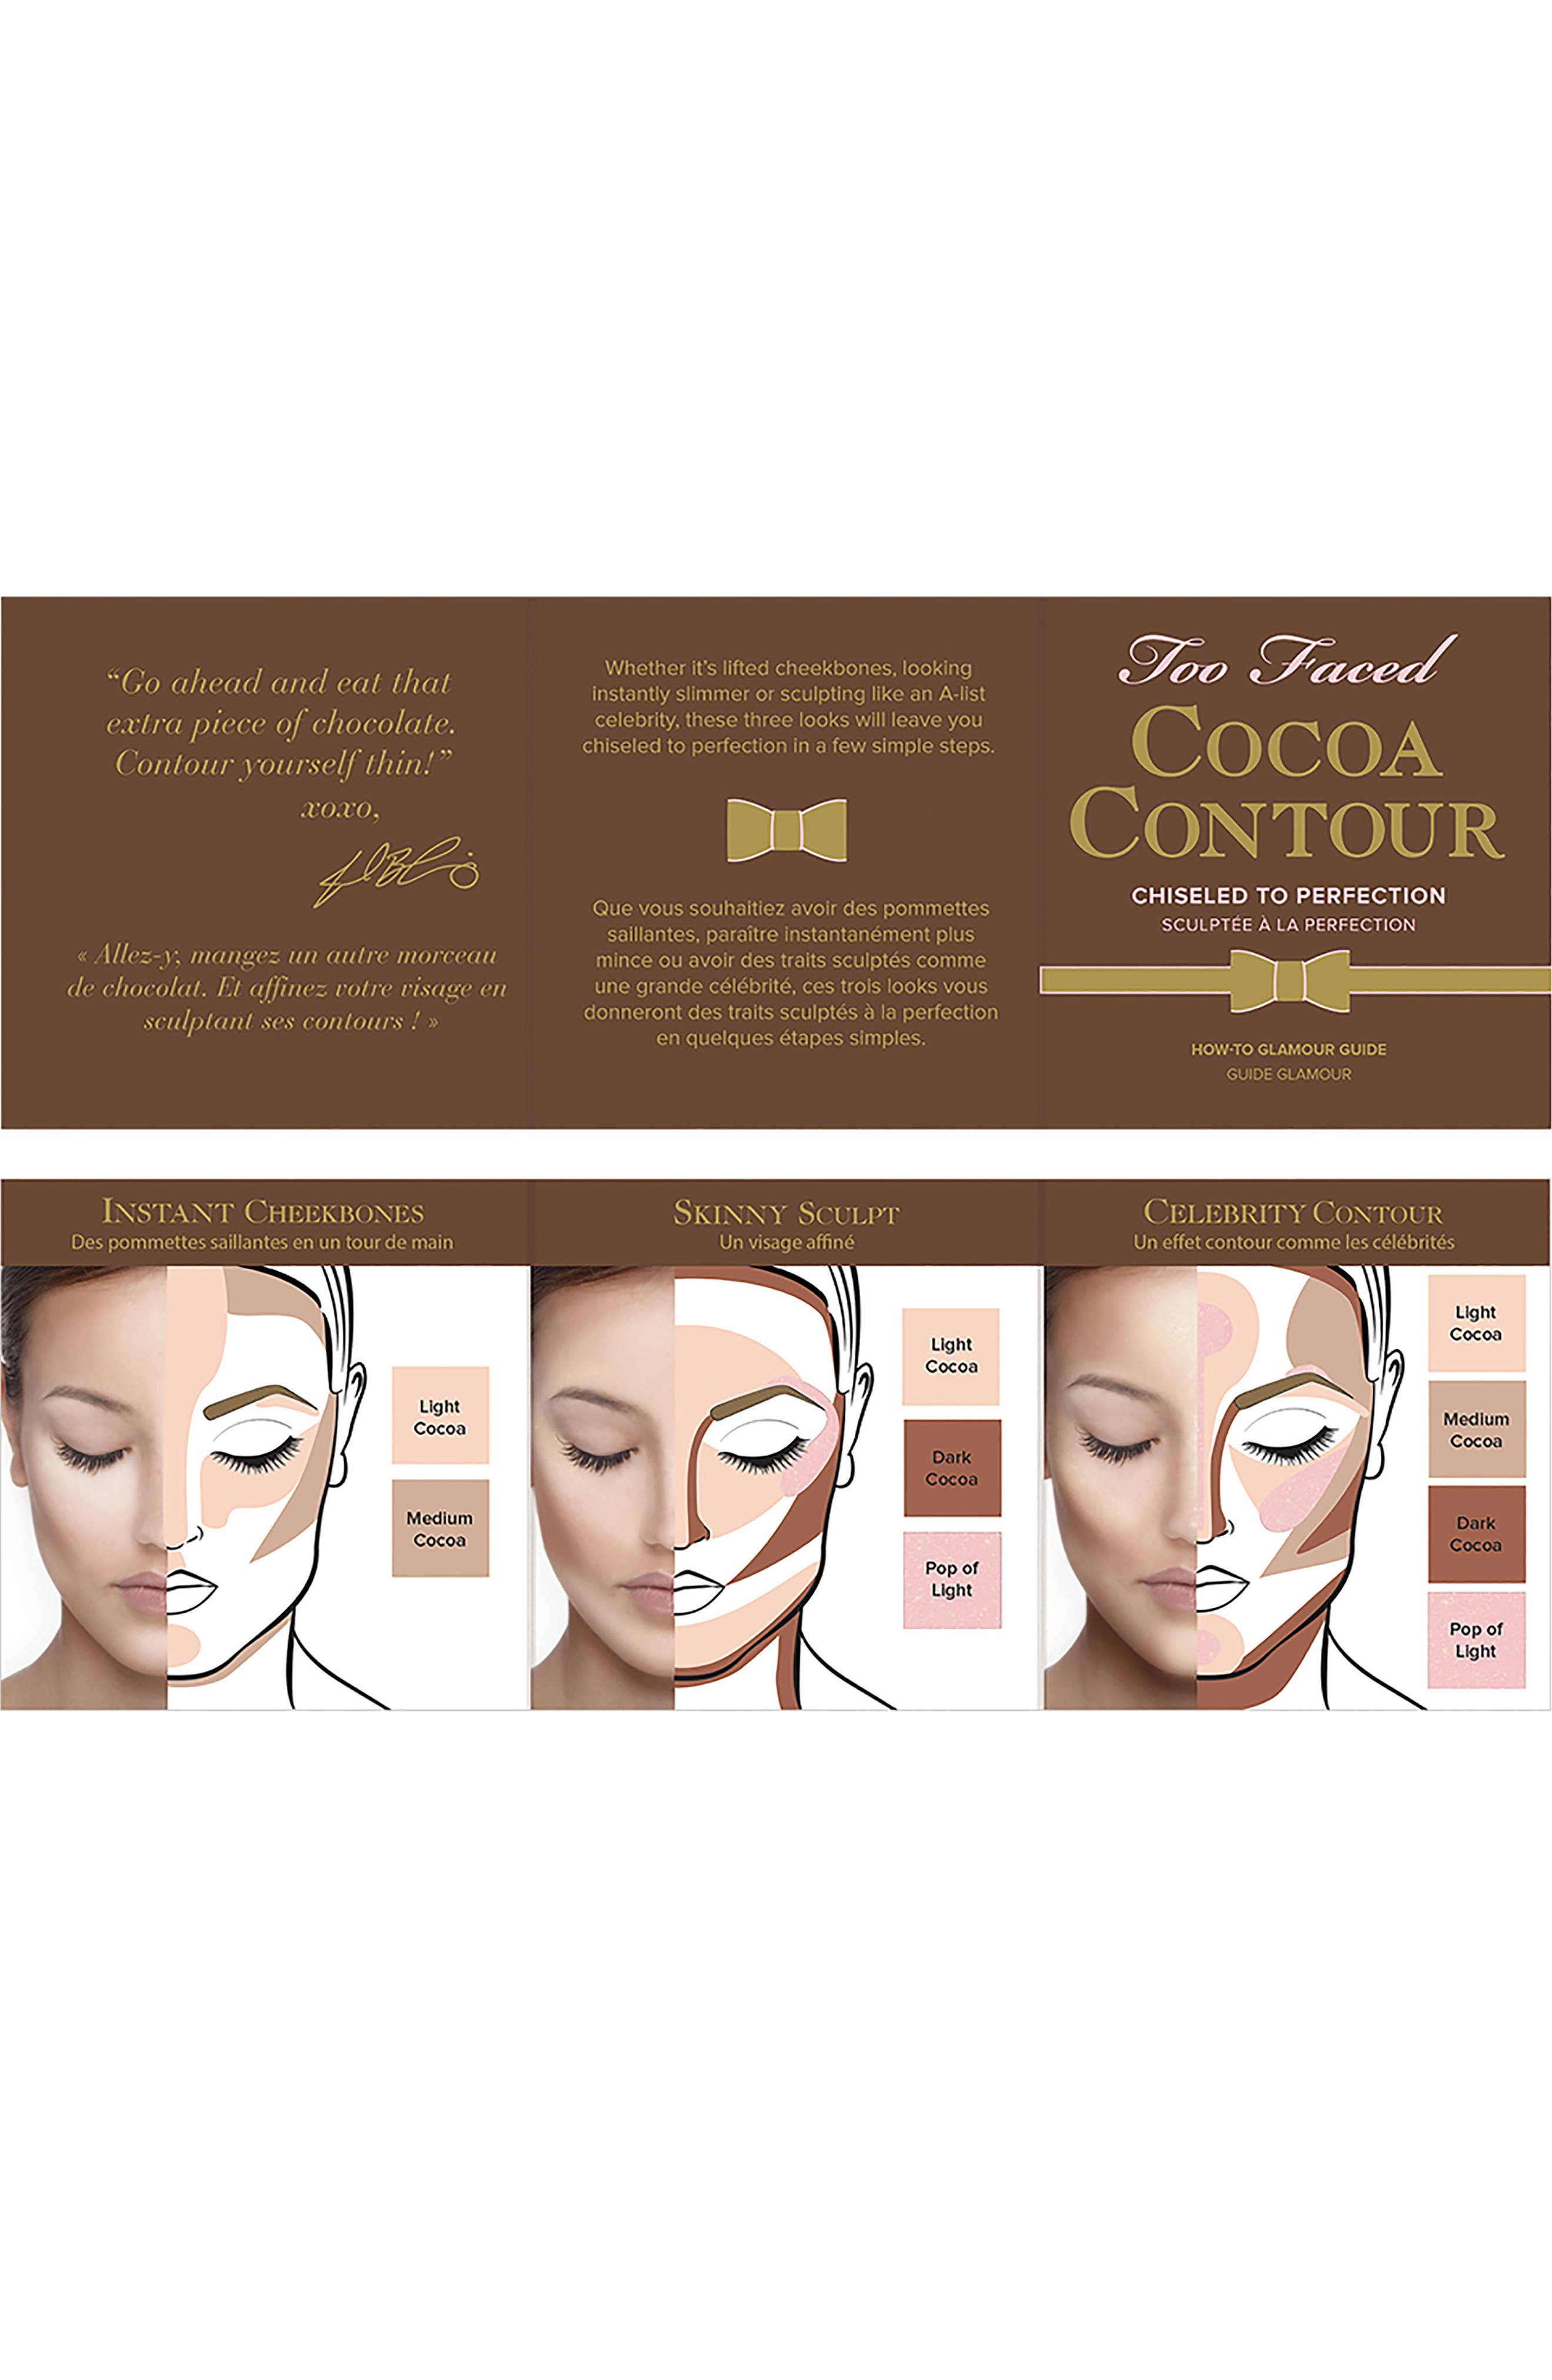 Cocoa Contour Chiseled To Perfection Palette,                             Alternate thumbnail 7, color,                             NO COLOR